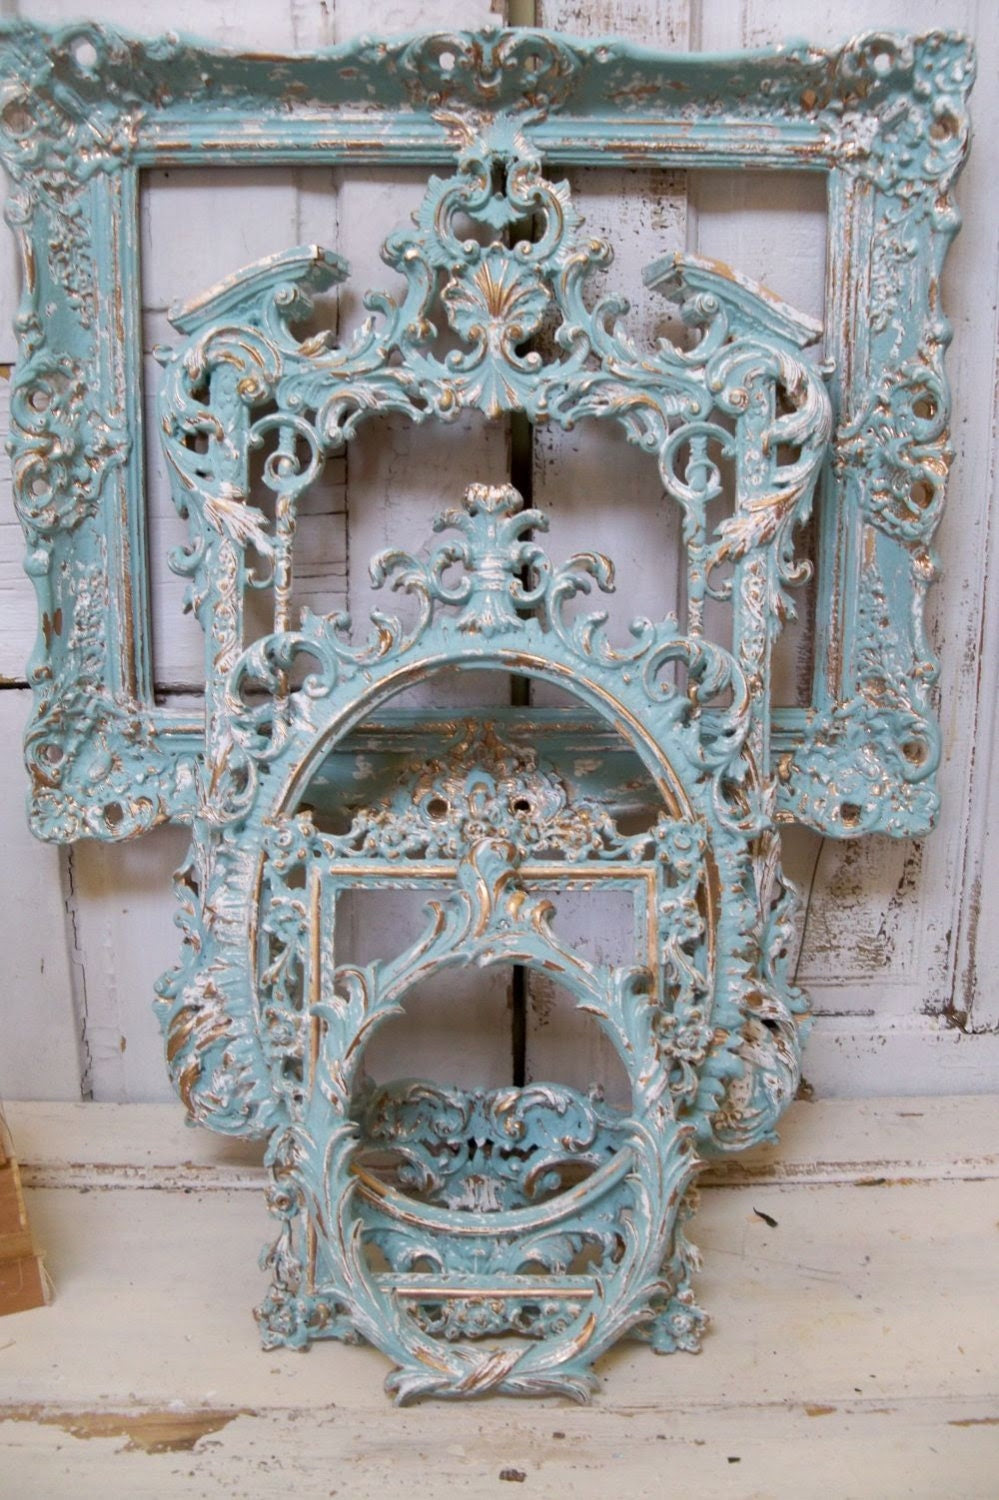 Frame grouping ornate very light blue aqua with white distressed French chic vintage wall decor Anita Spero - AnitaSperoDesign